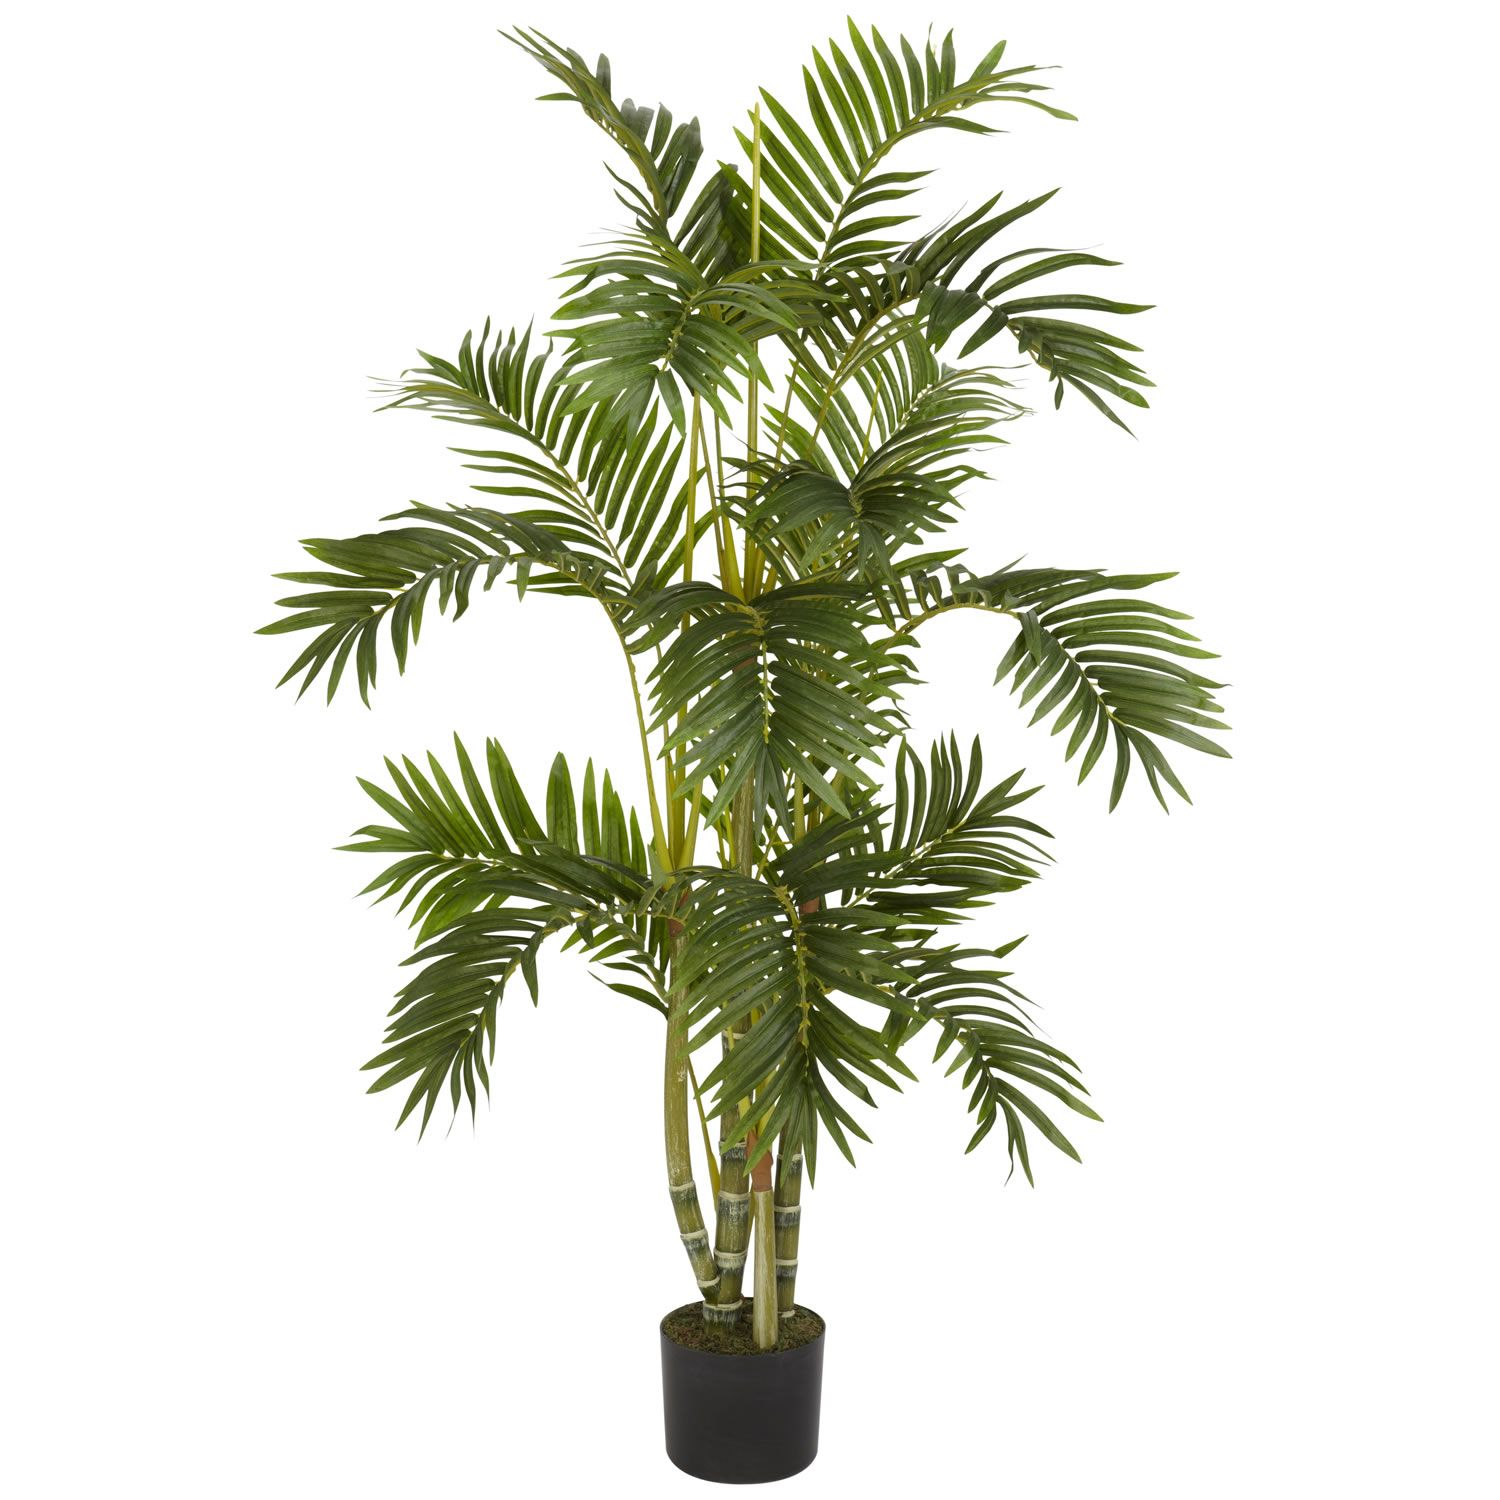 4 foot Areca Palm Tree: Potted | Silk tree and Apartments